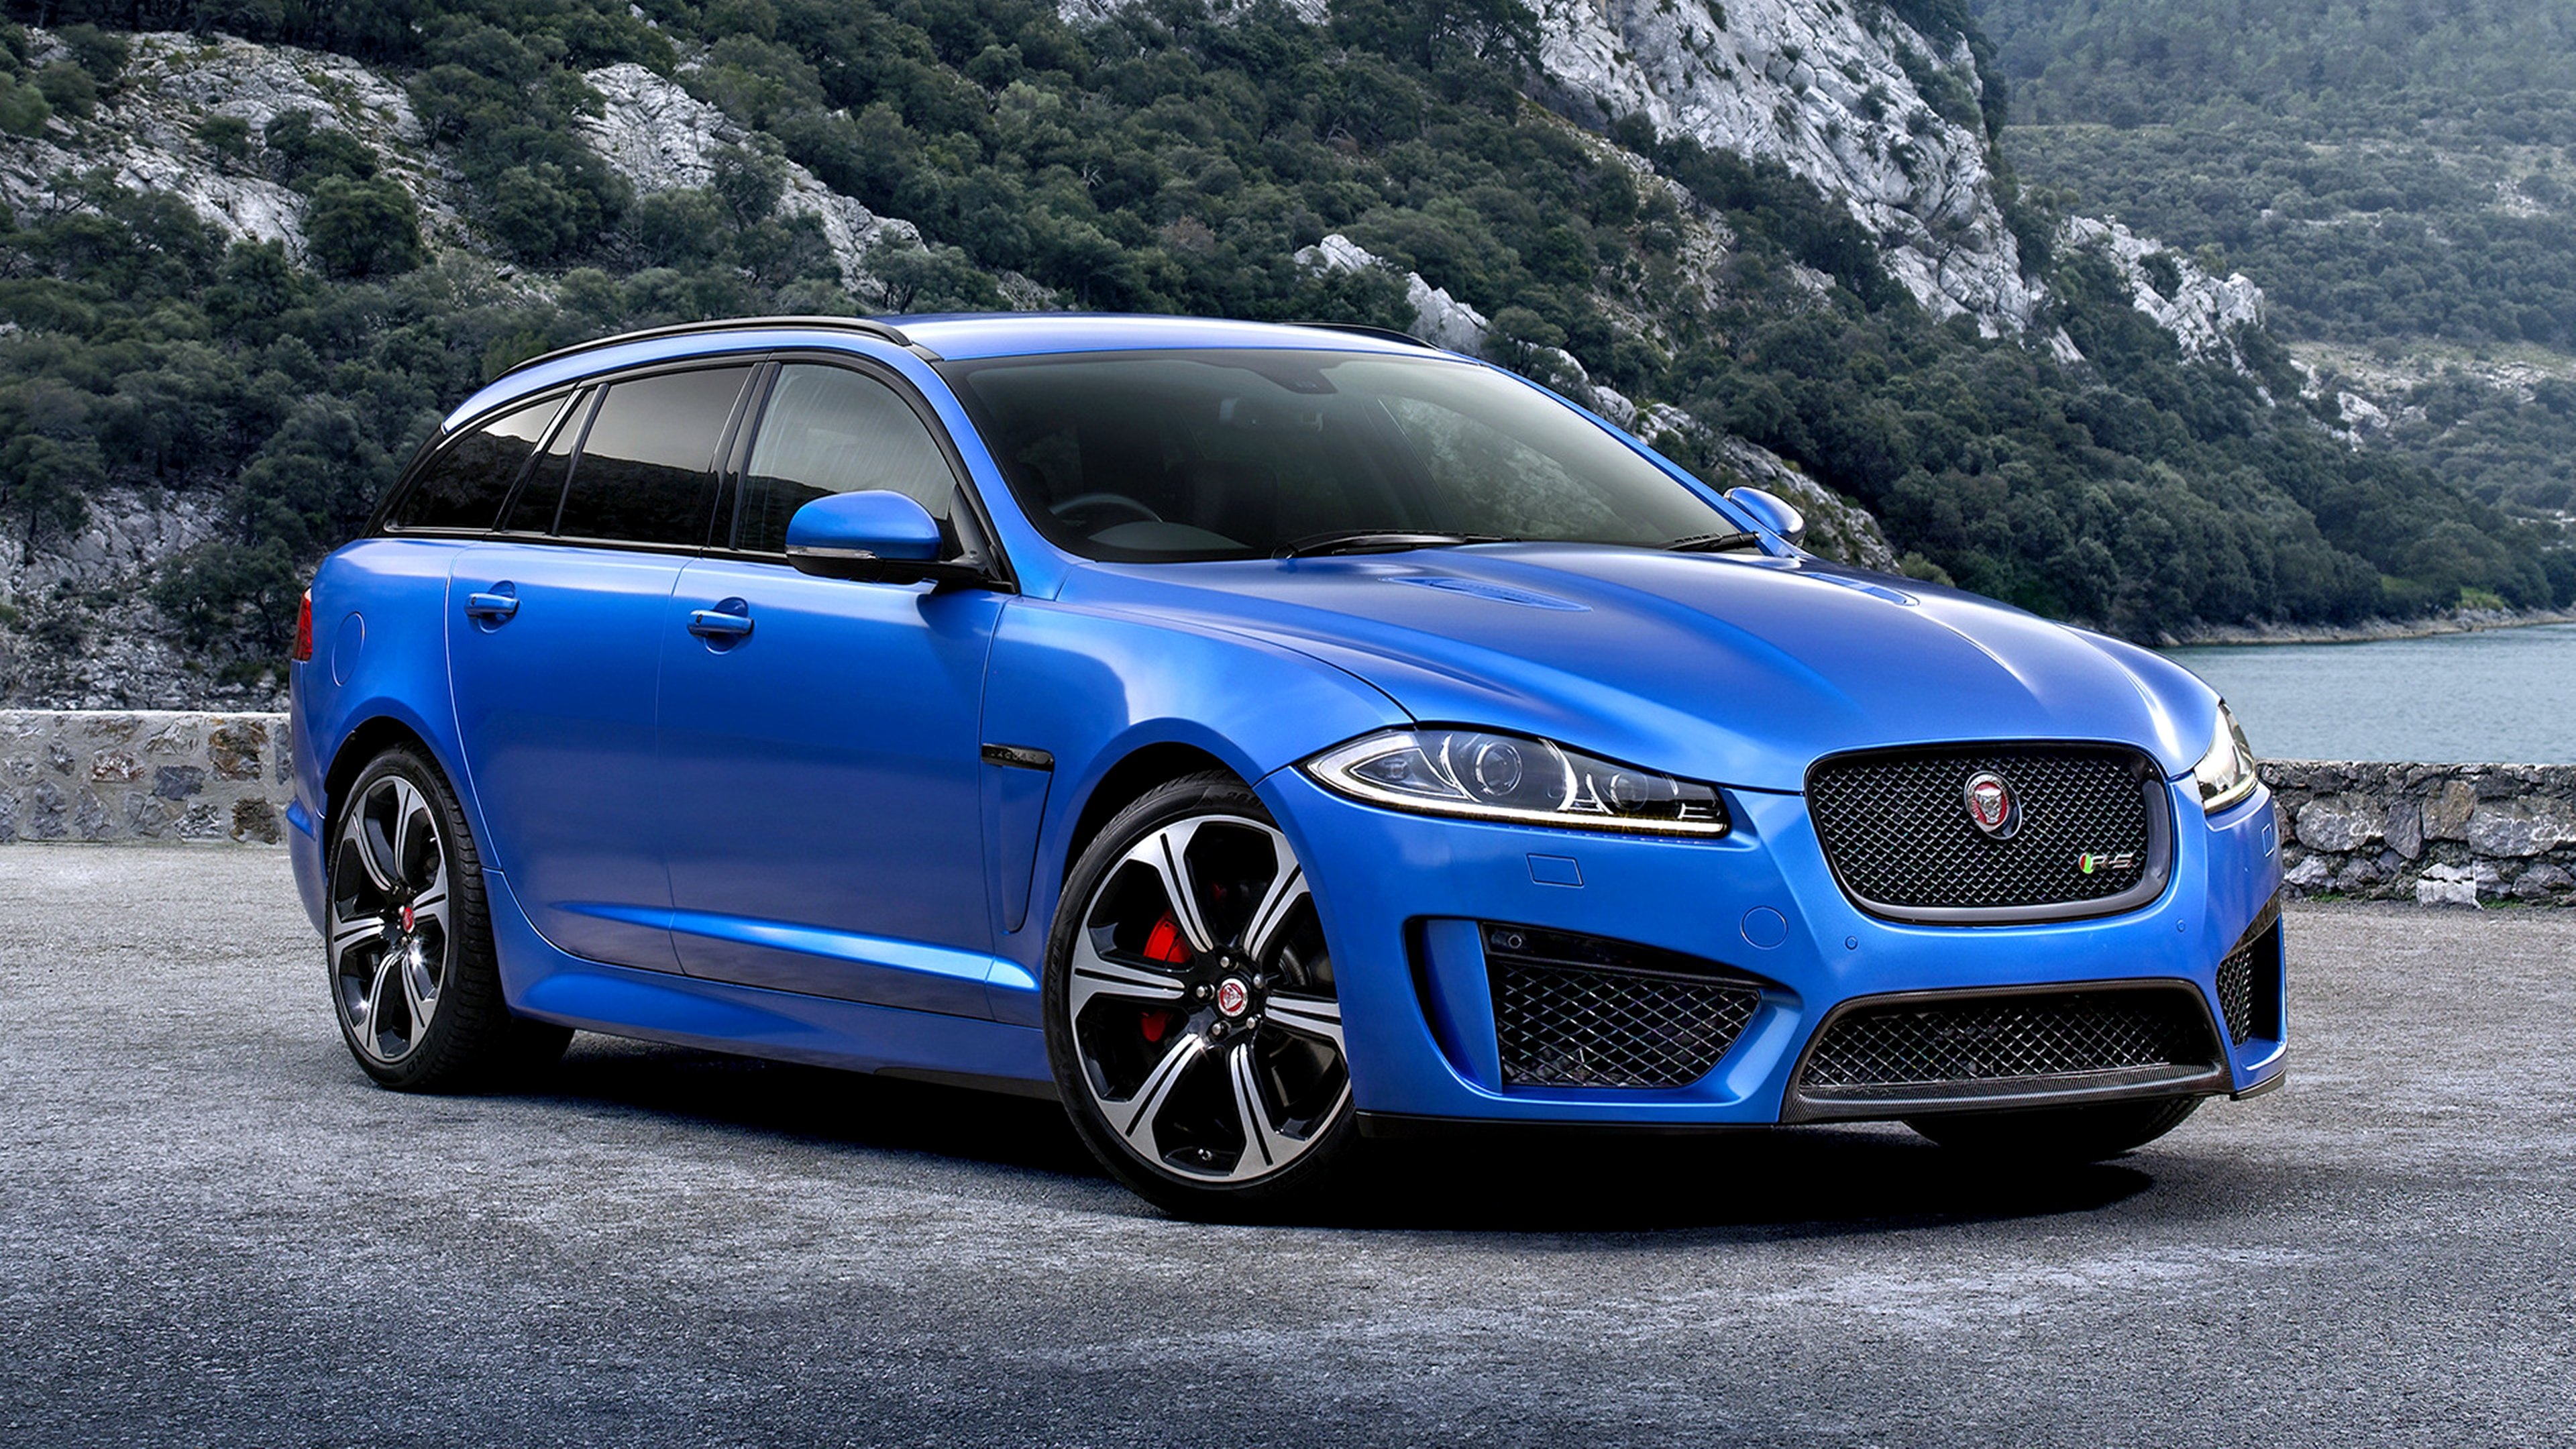 Jaguar cars blue - photo#13